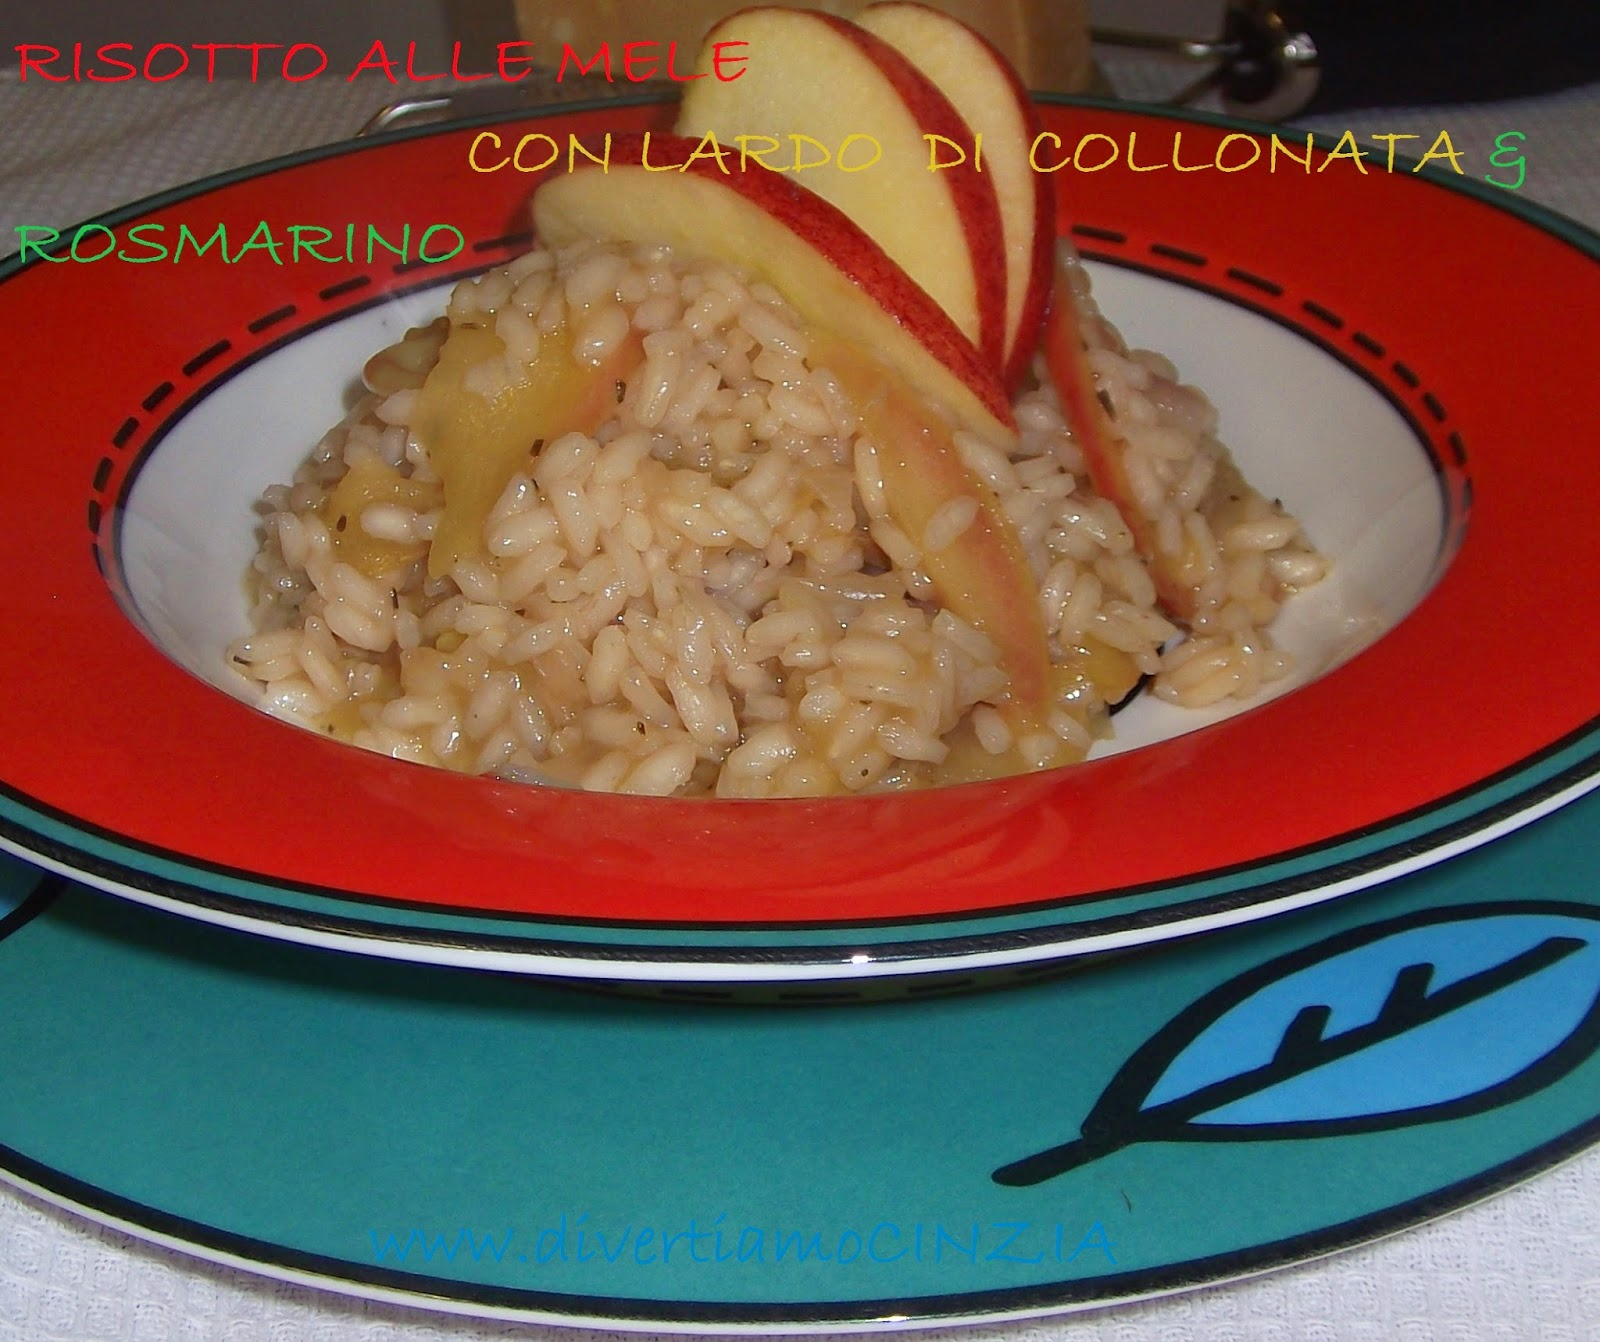 RISOTTO DI MELE CON LARDO DI COLLONATA